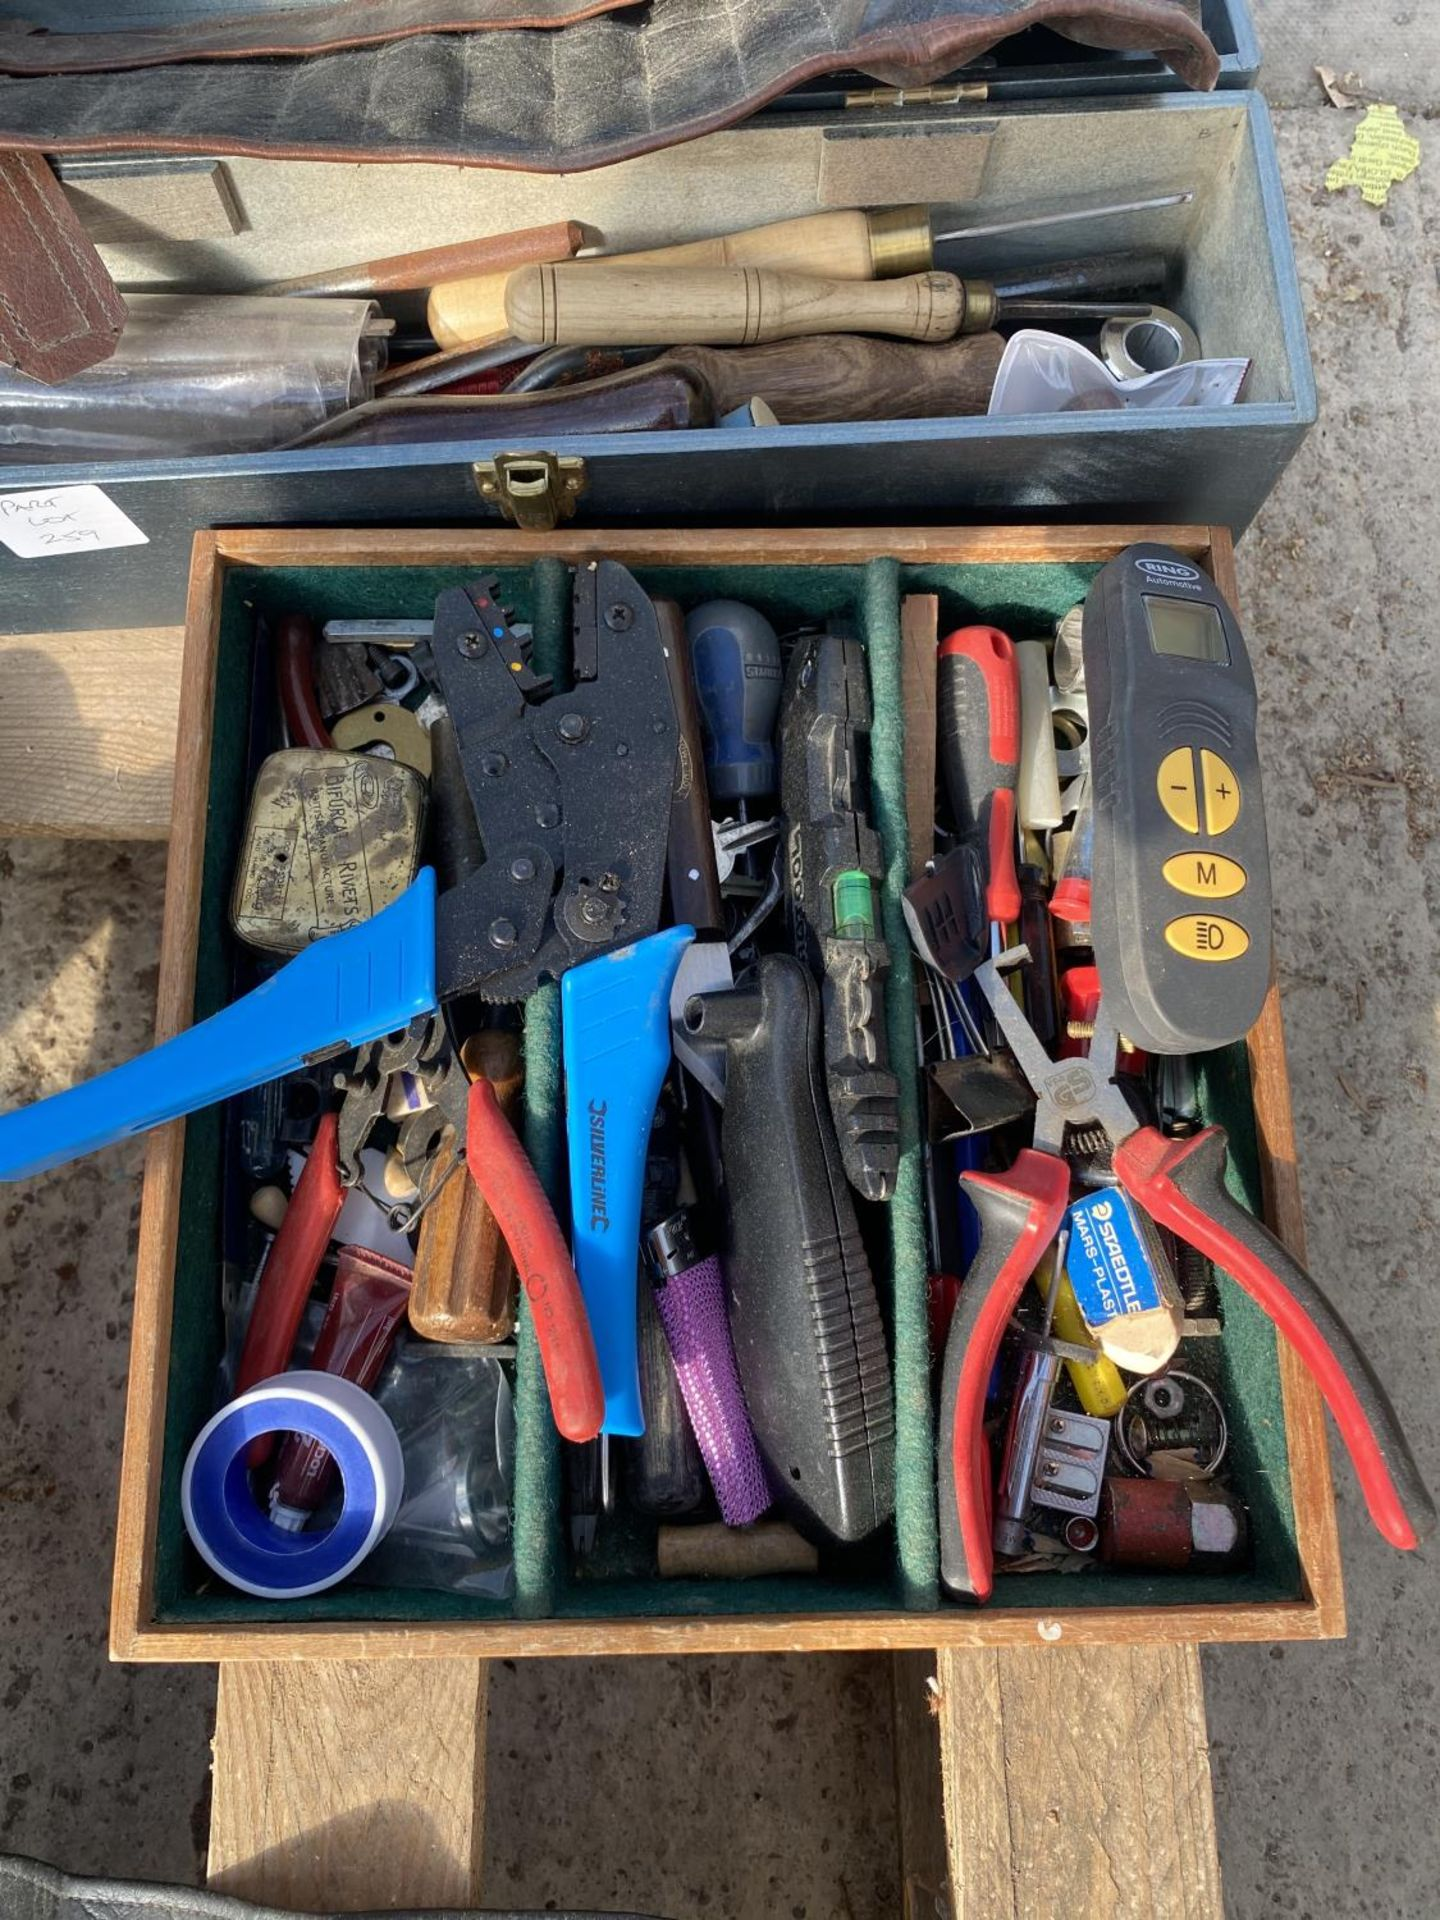 VARIOUS TOOLS AND TOOL BOXES TO INCLUDE CHISELS, SCREW DRIVERS, WIRE STRIPPERS ETC NO VAT - Image 4 of 7